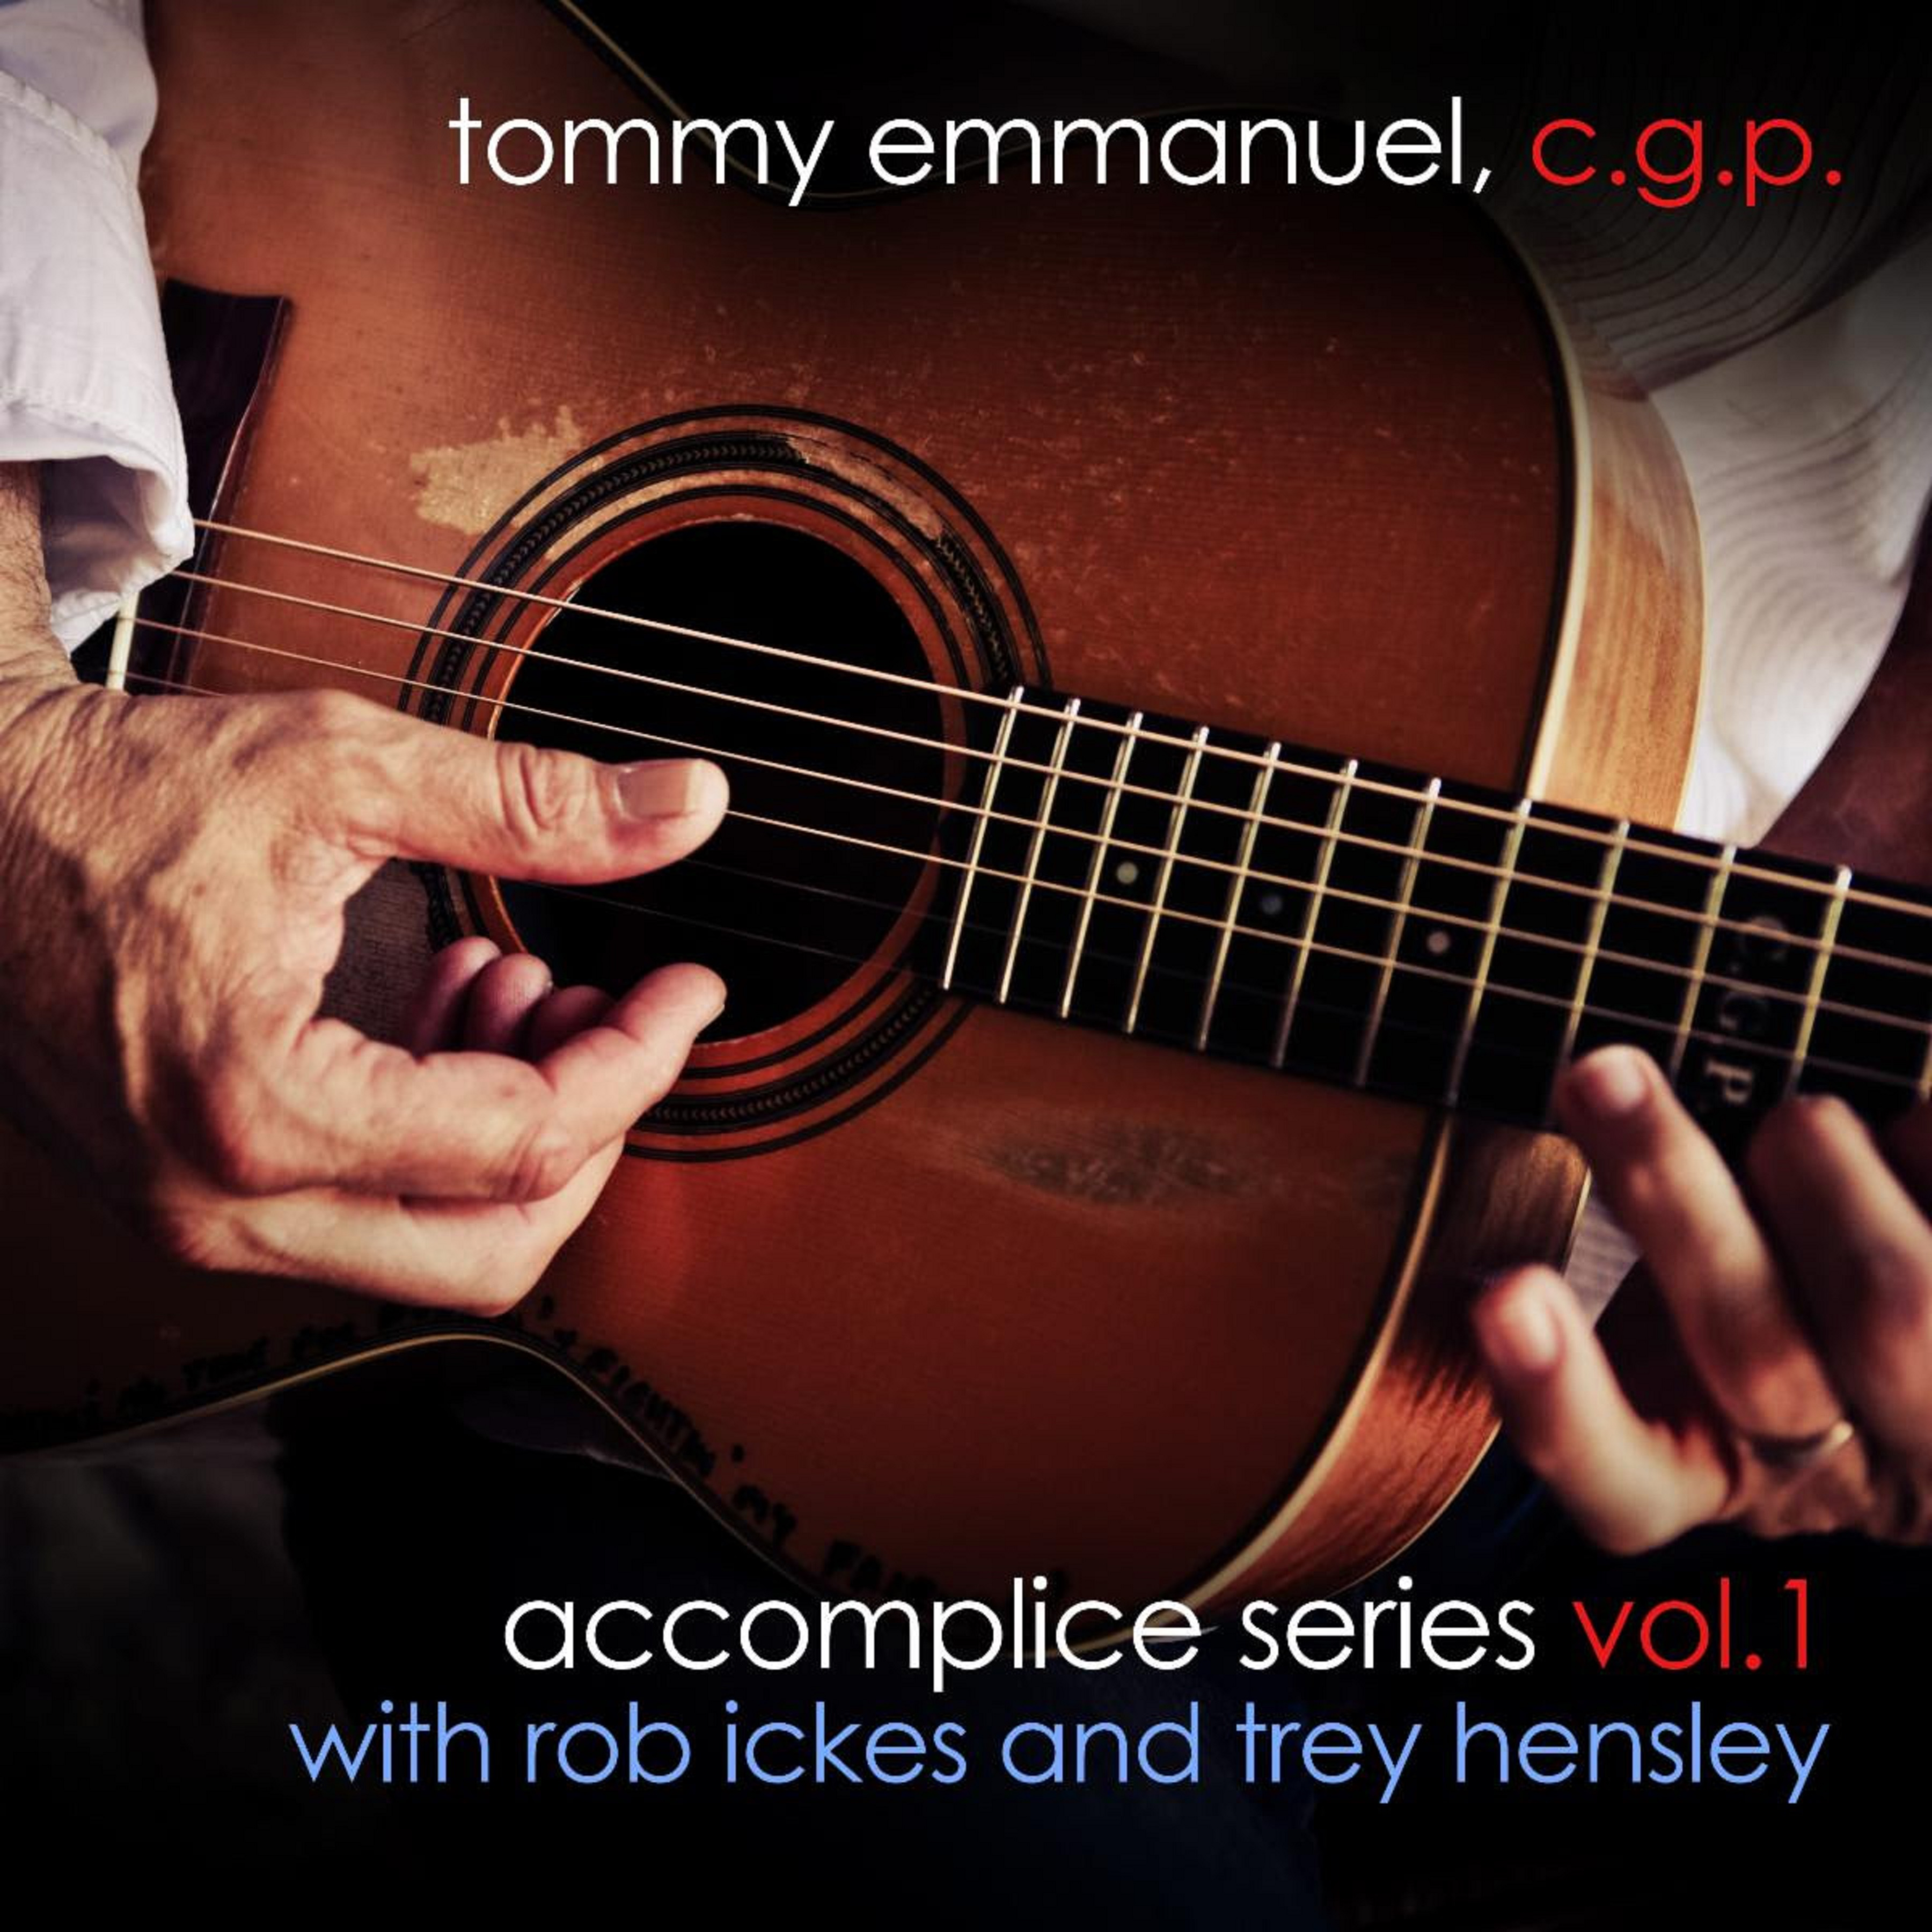 TOMMY EMMANUEL To Release New Ep 'Accomplice Series Volume 1 With Rob Ickes & Trey Hensley' 5/7